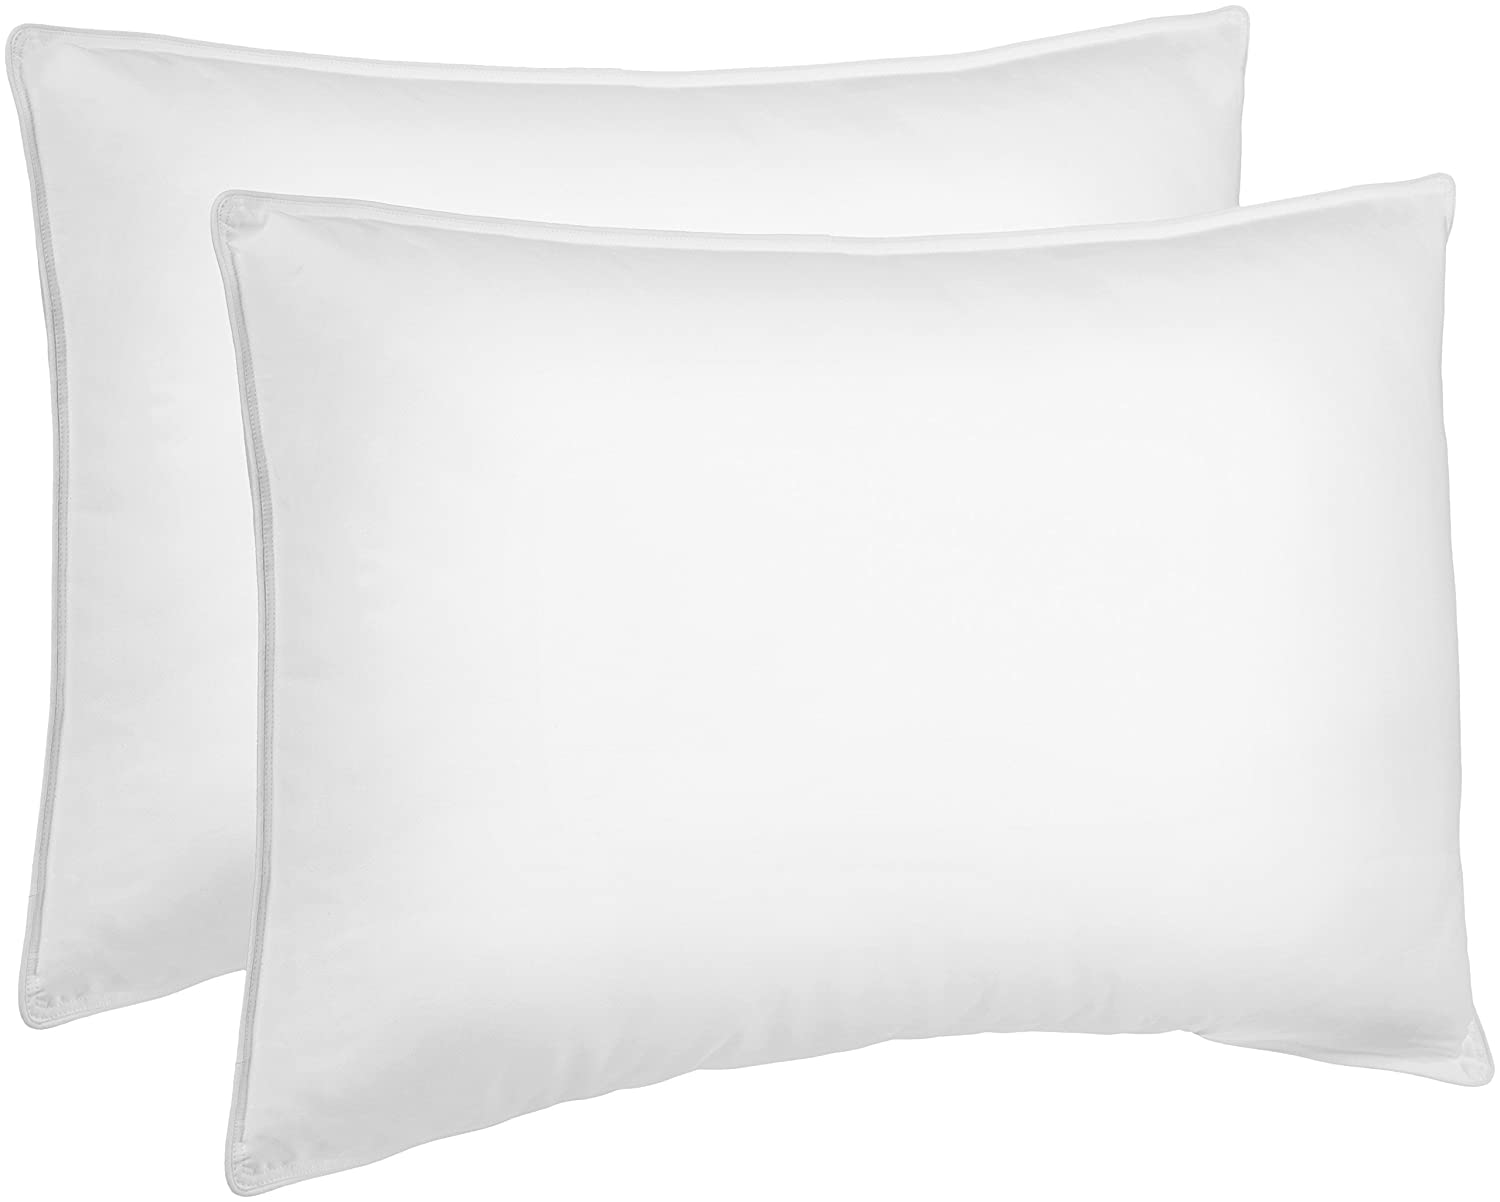 AmazonBasics Down Alternative Bed Pillows for Stomach and Back Sleepers - 2-Pack,...